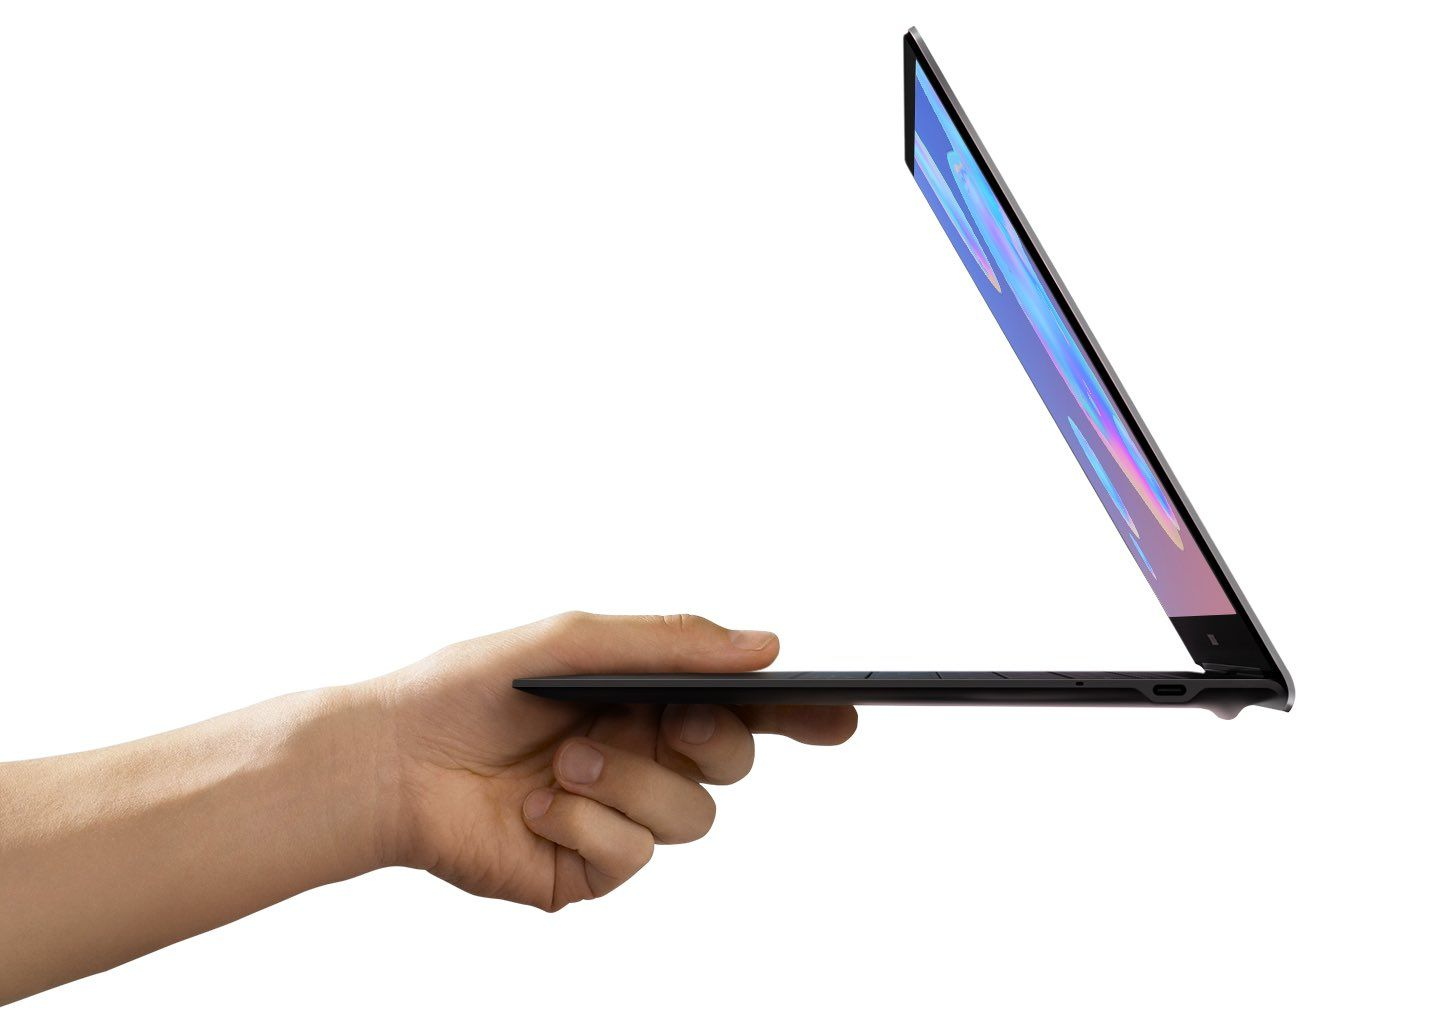 Samsung S Qualcomm Powered Galaxy Book S Windows 10 Laptop To Launch On February 13 Onmsft Com Galaxy Book Windows 10 Samsung Galaxy